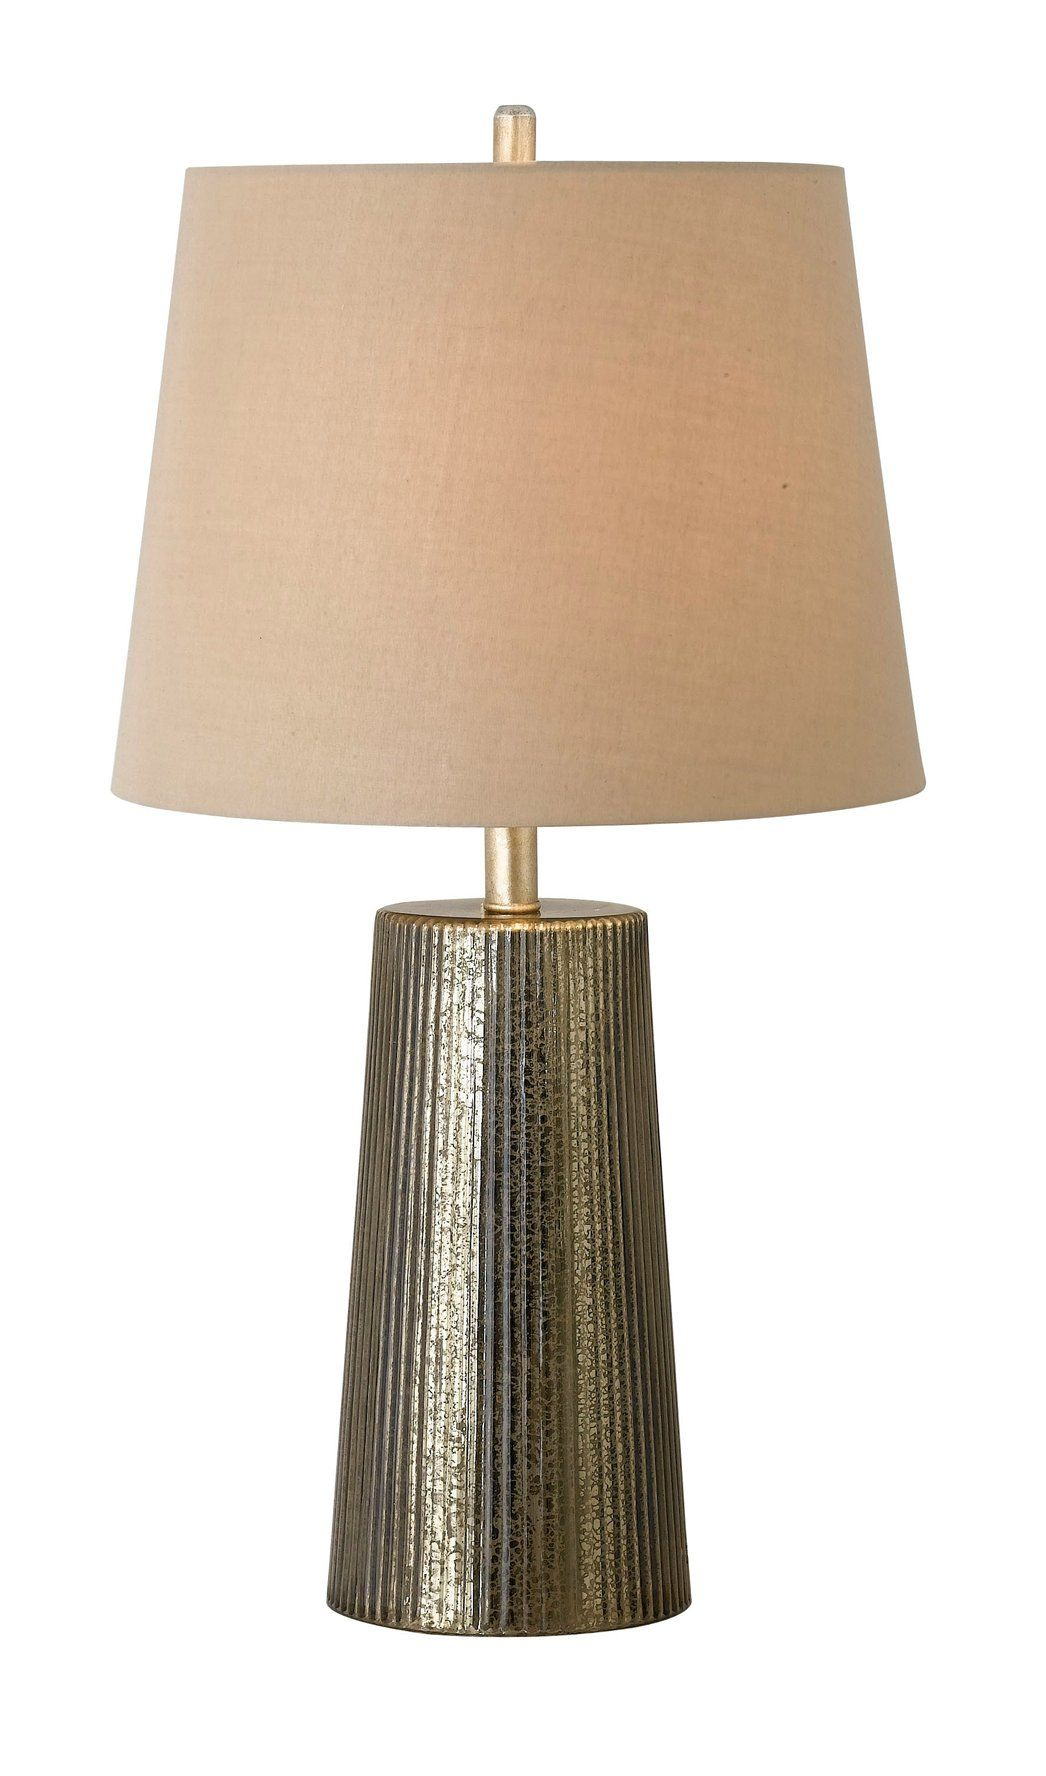 17 Street Templeton Table Lamp 150 With Images Lamp Table